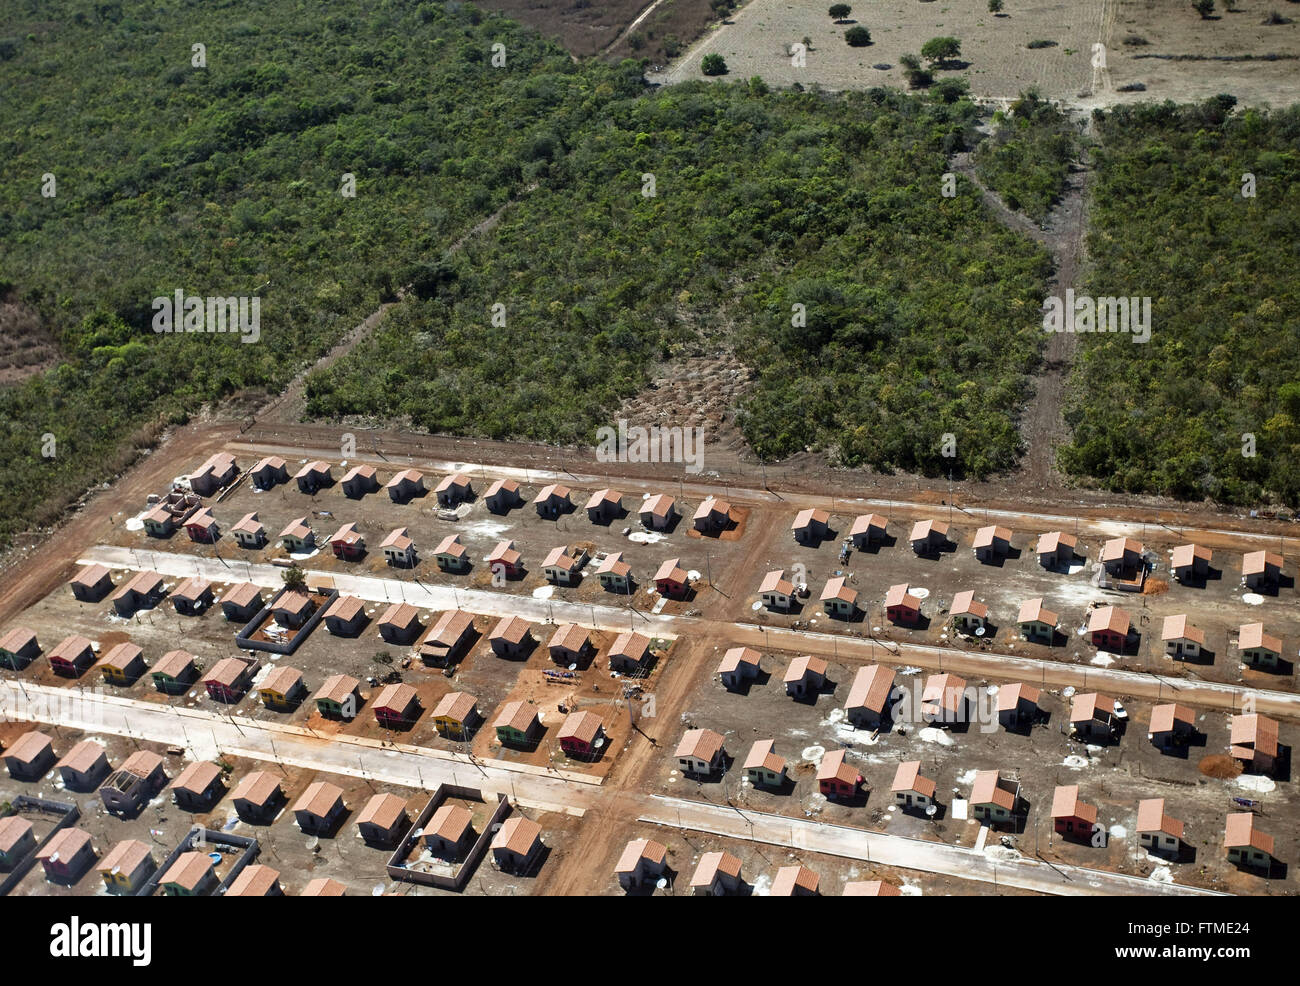 Aerial view of public housing on the outskirts of Canarana - Stock Image